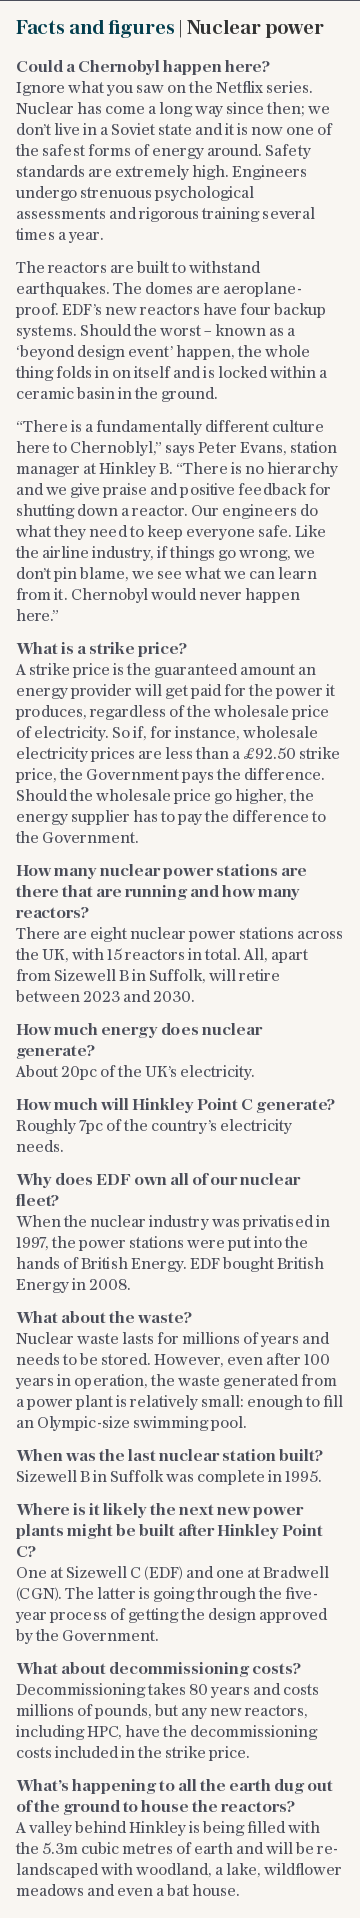 Facts and figures | Nuclear power